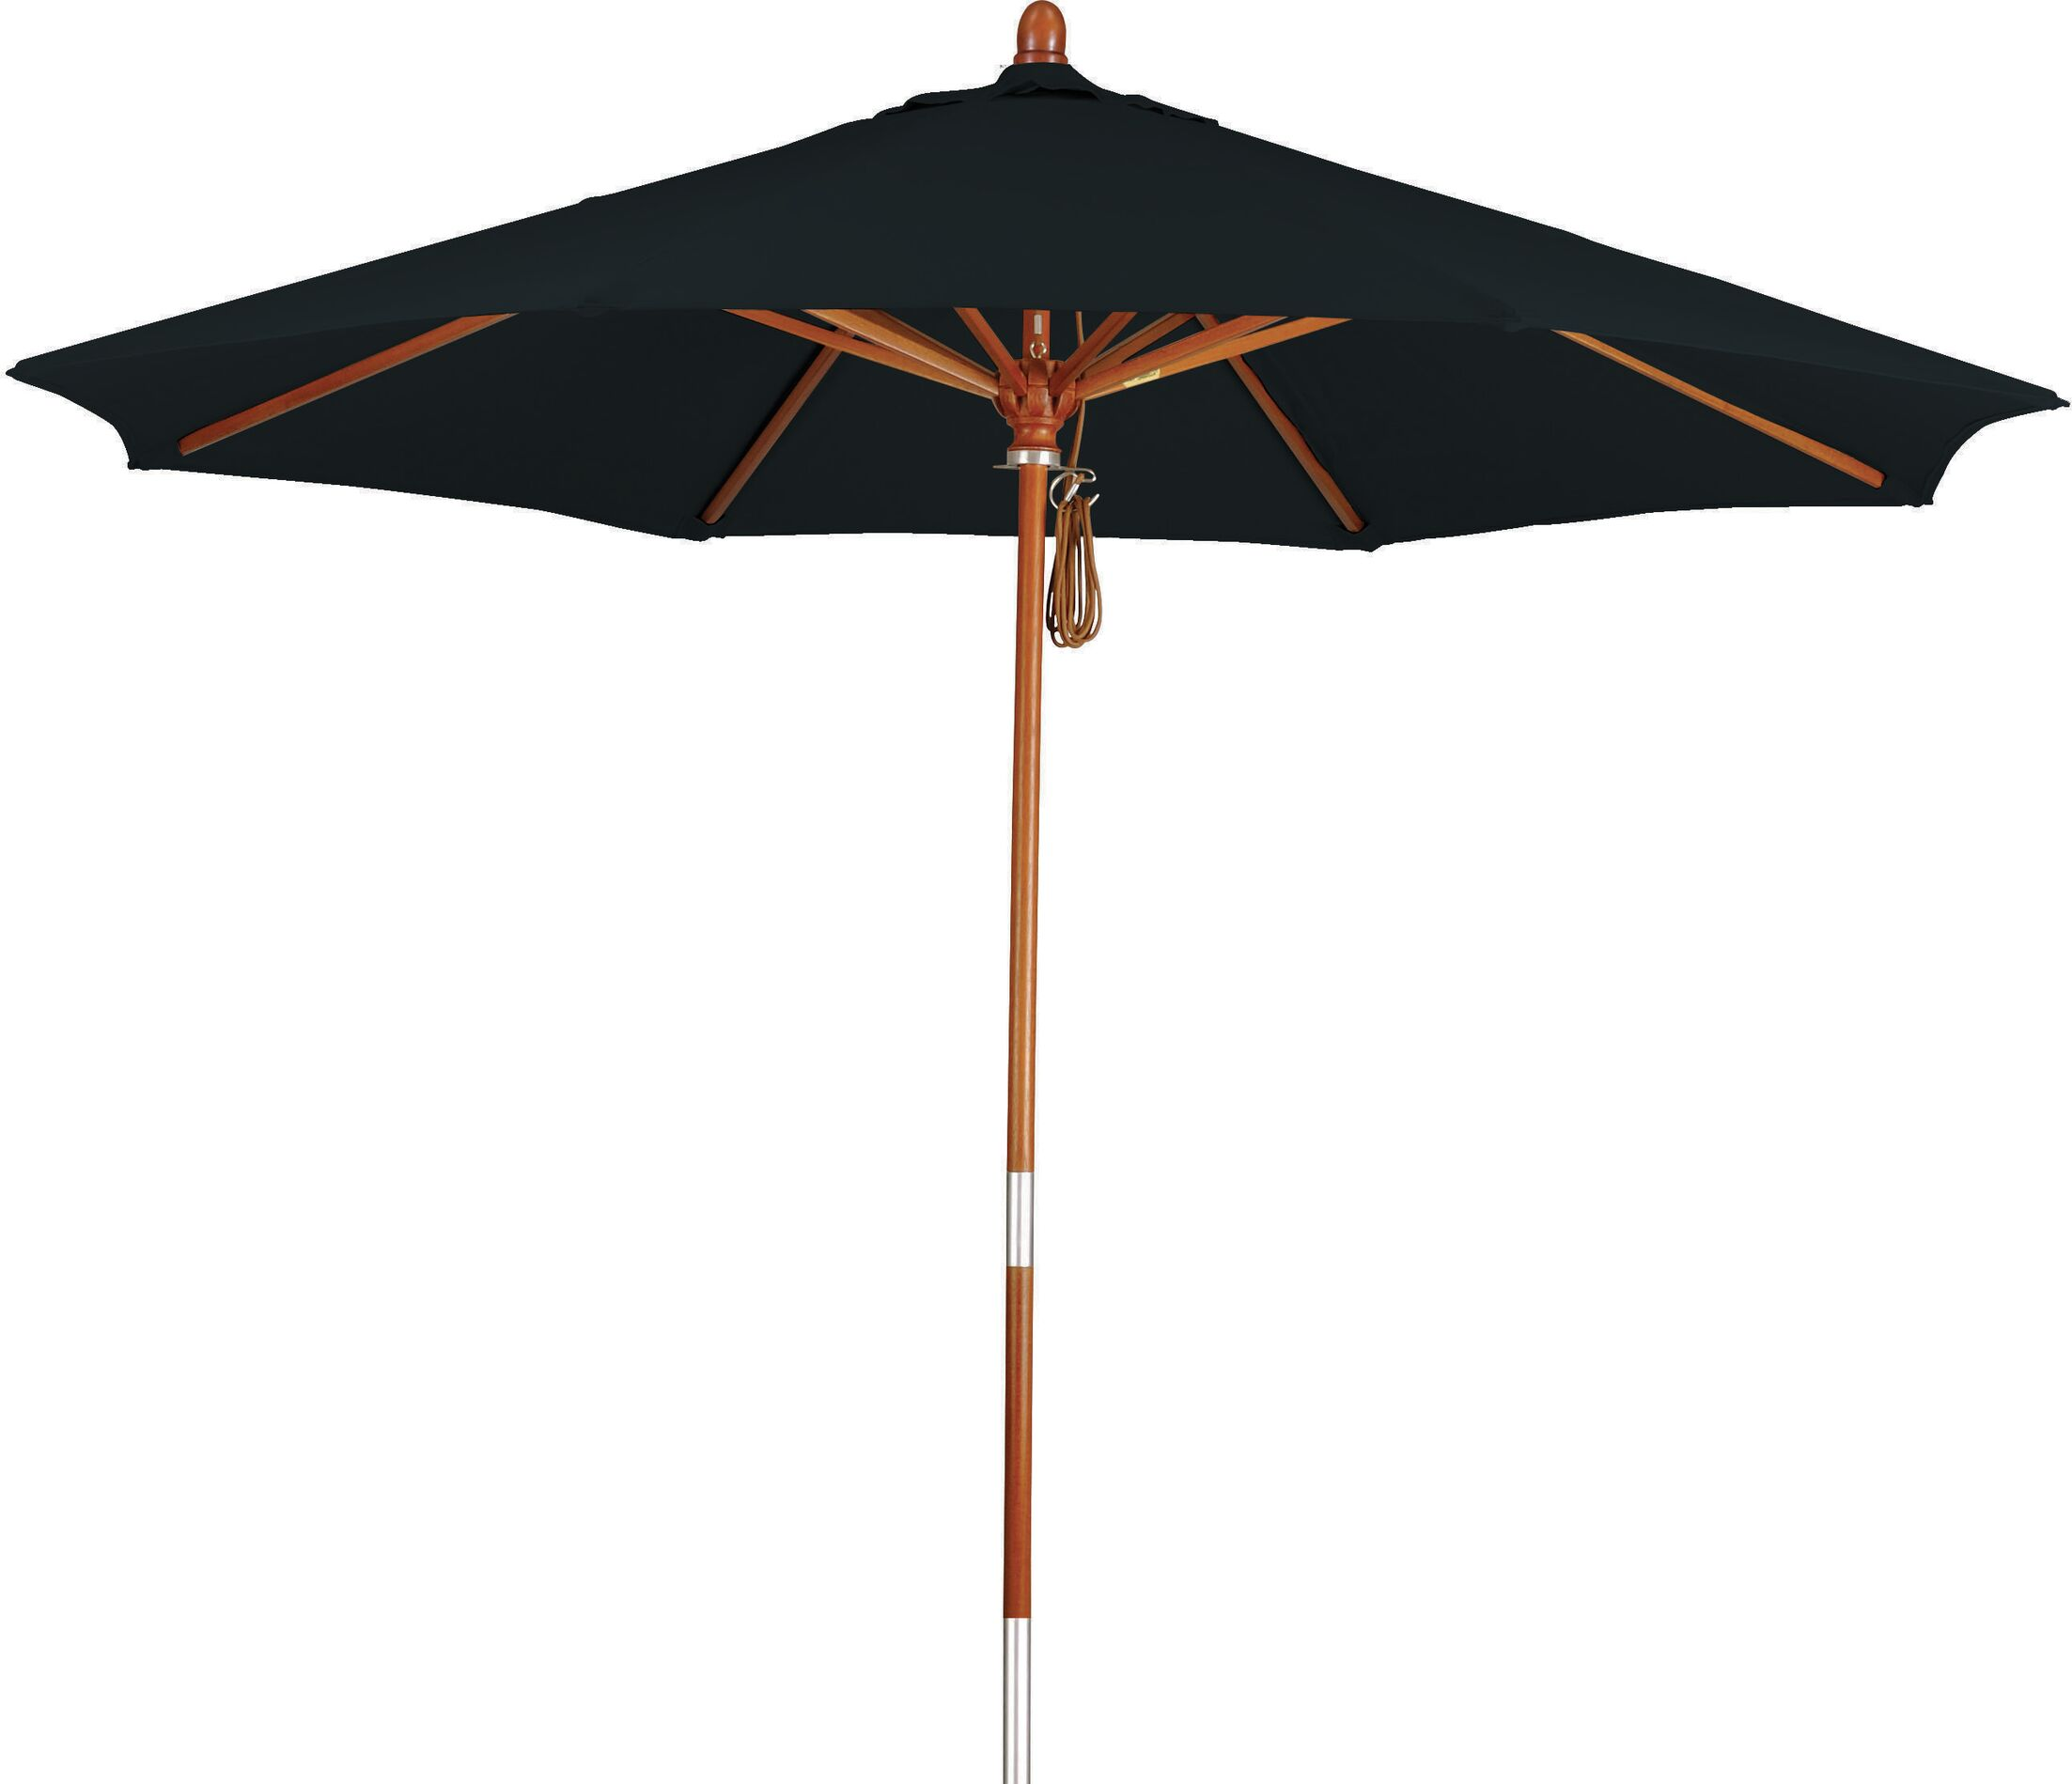 Phat Tommy 7.5' Market Umbrella Fabric: Spa, Material: Wood